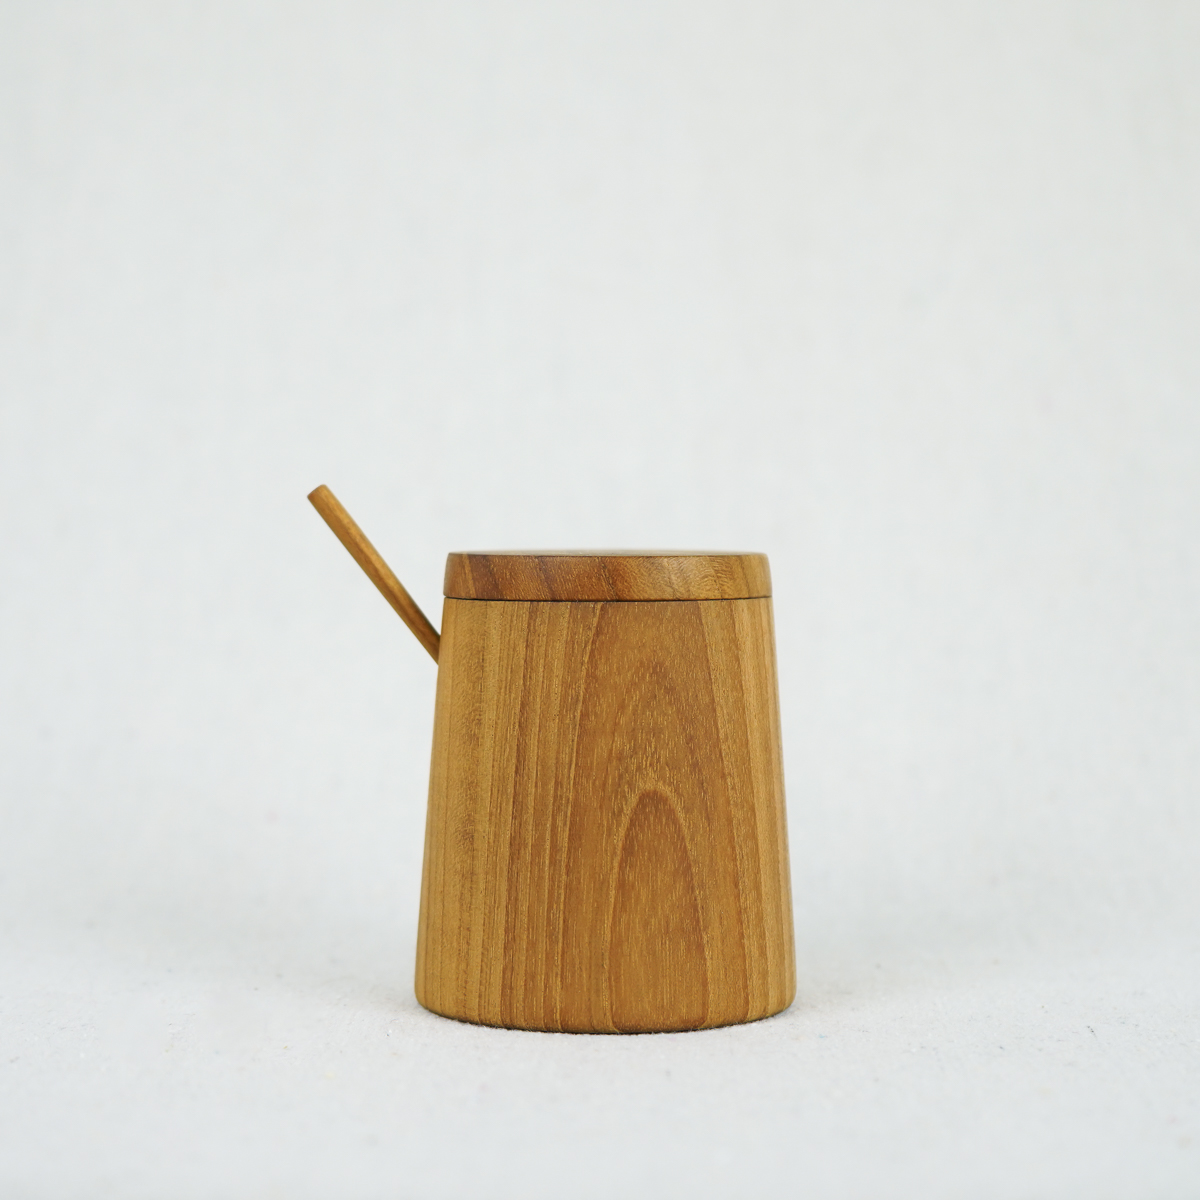 teak-salt-cellar-with-spoon